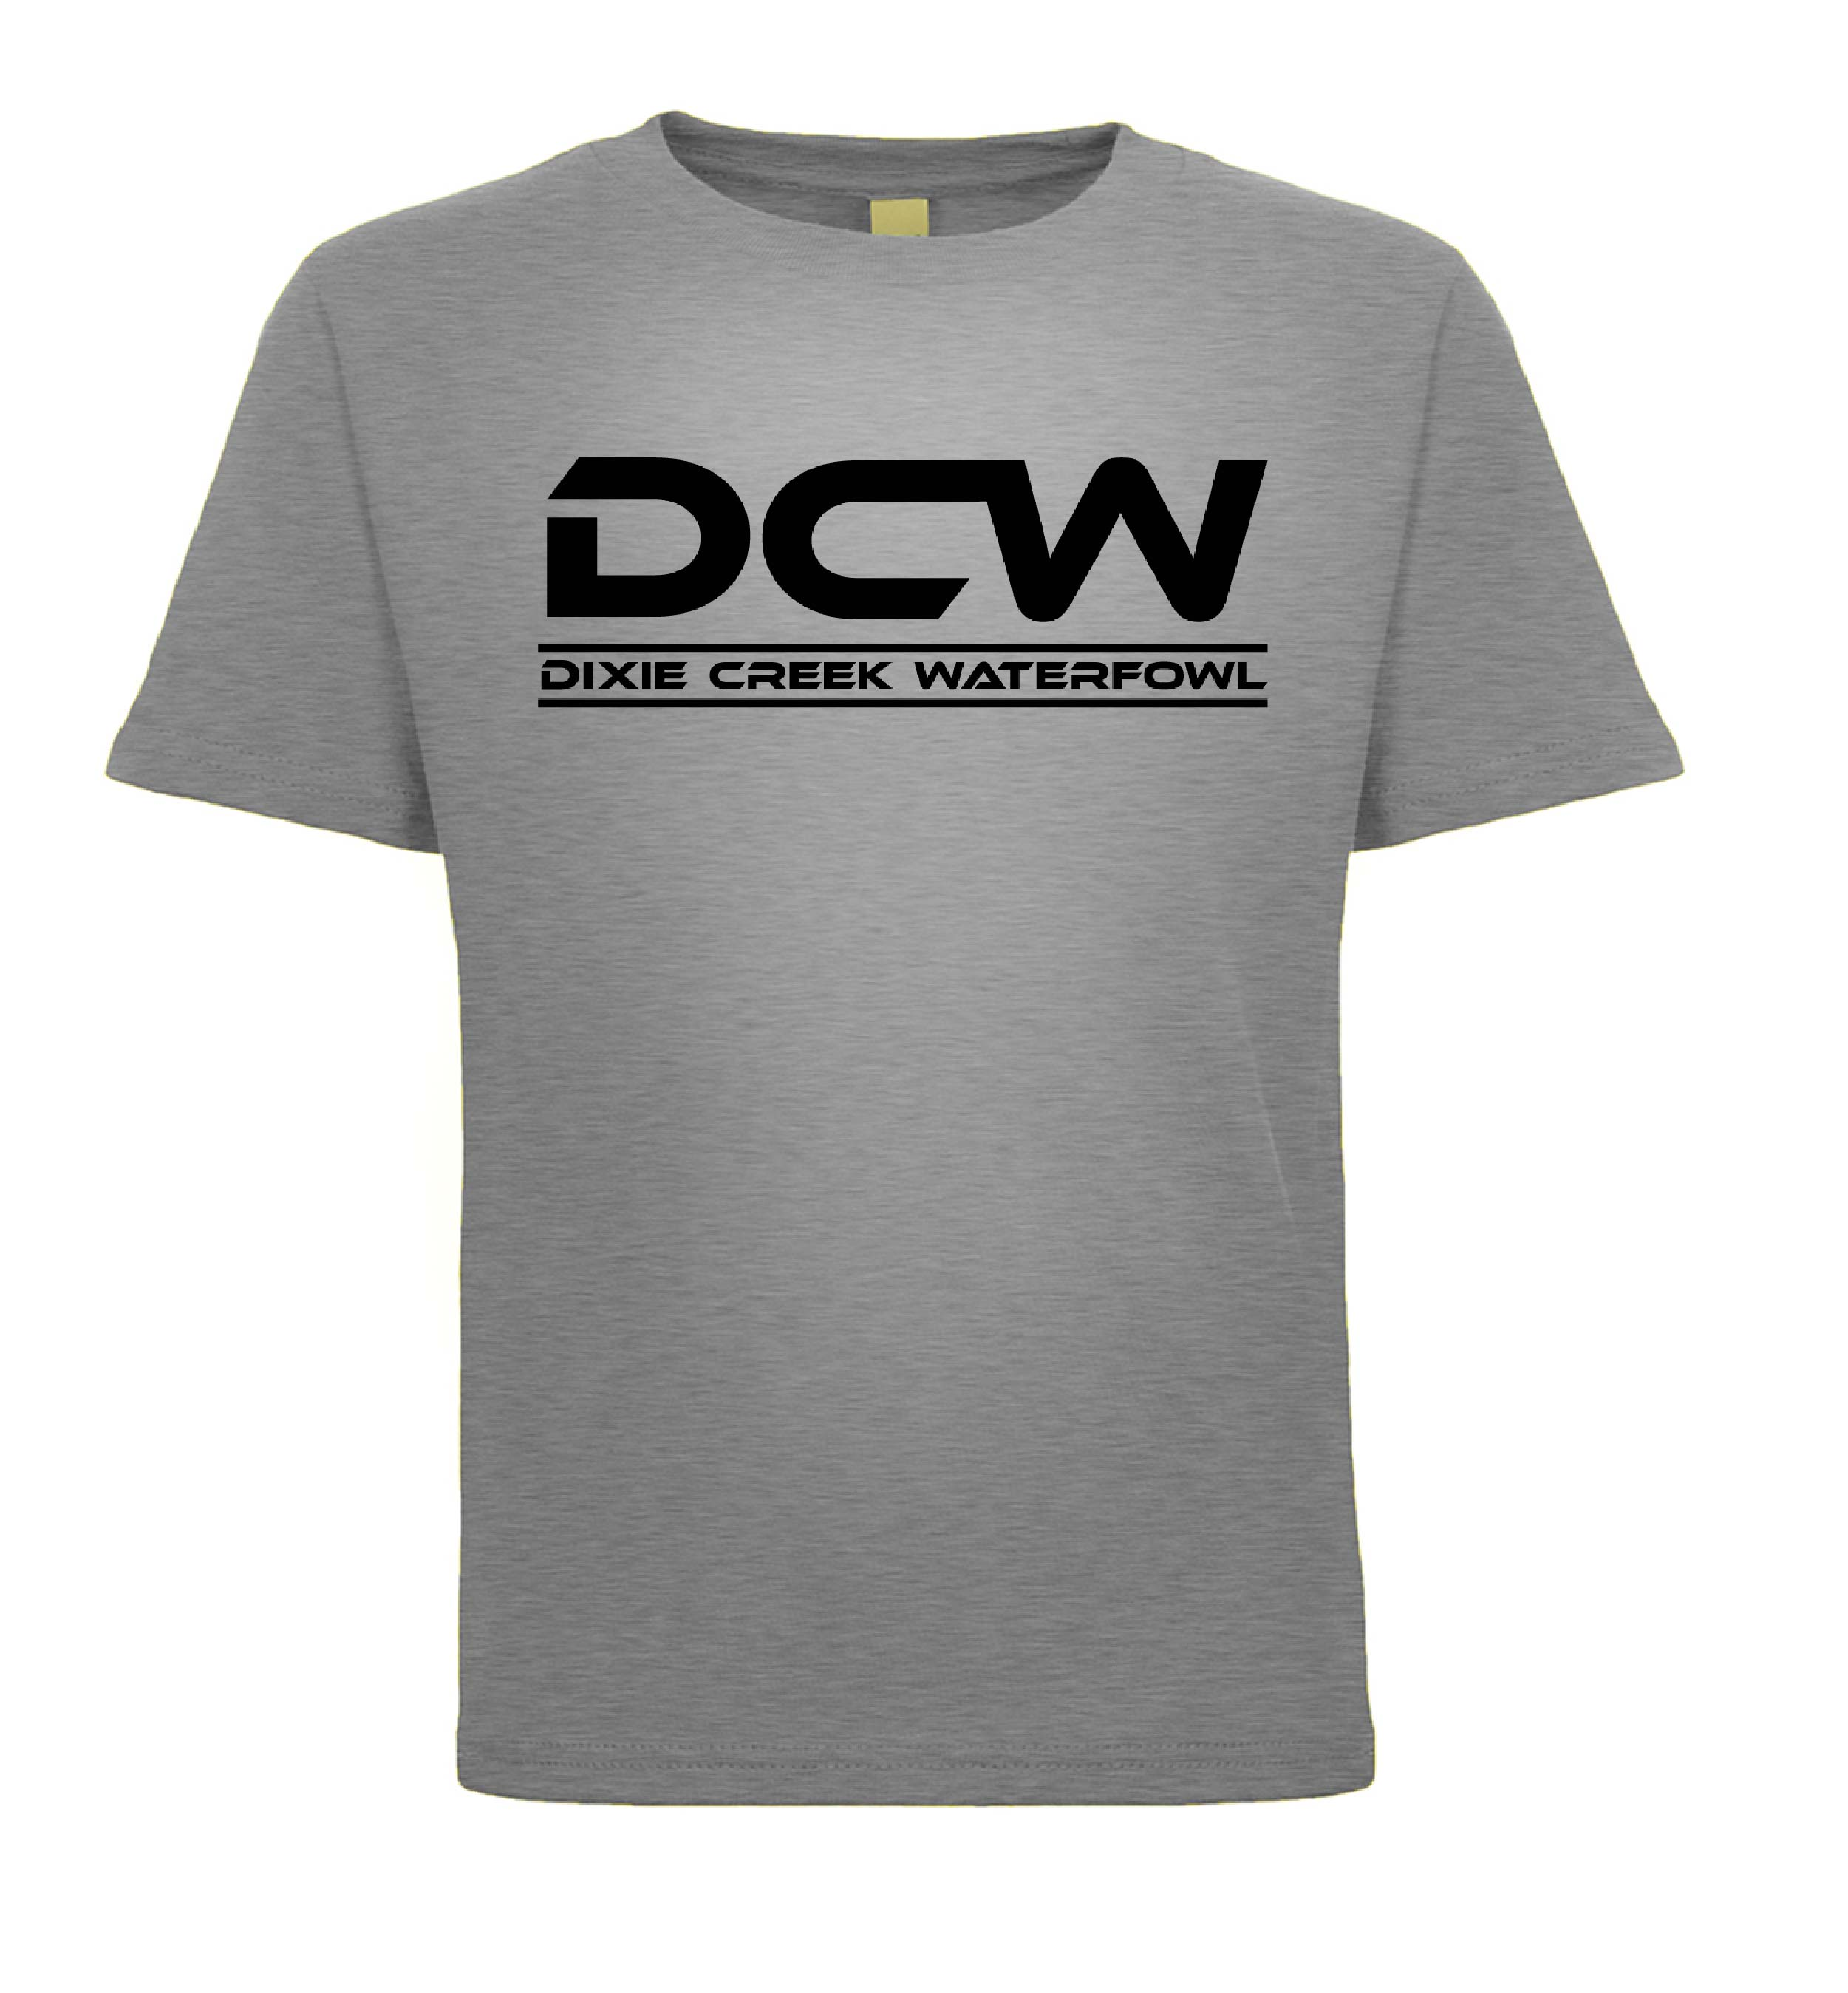 DCW - Youth Shirt